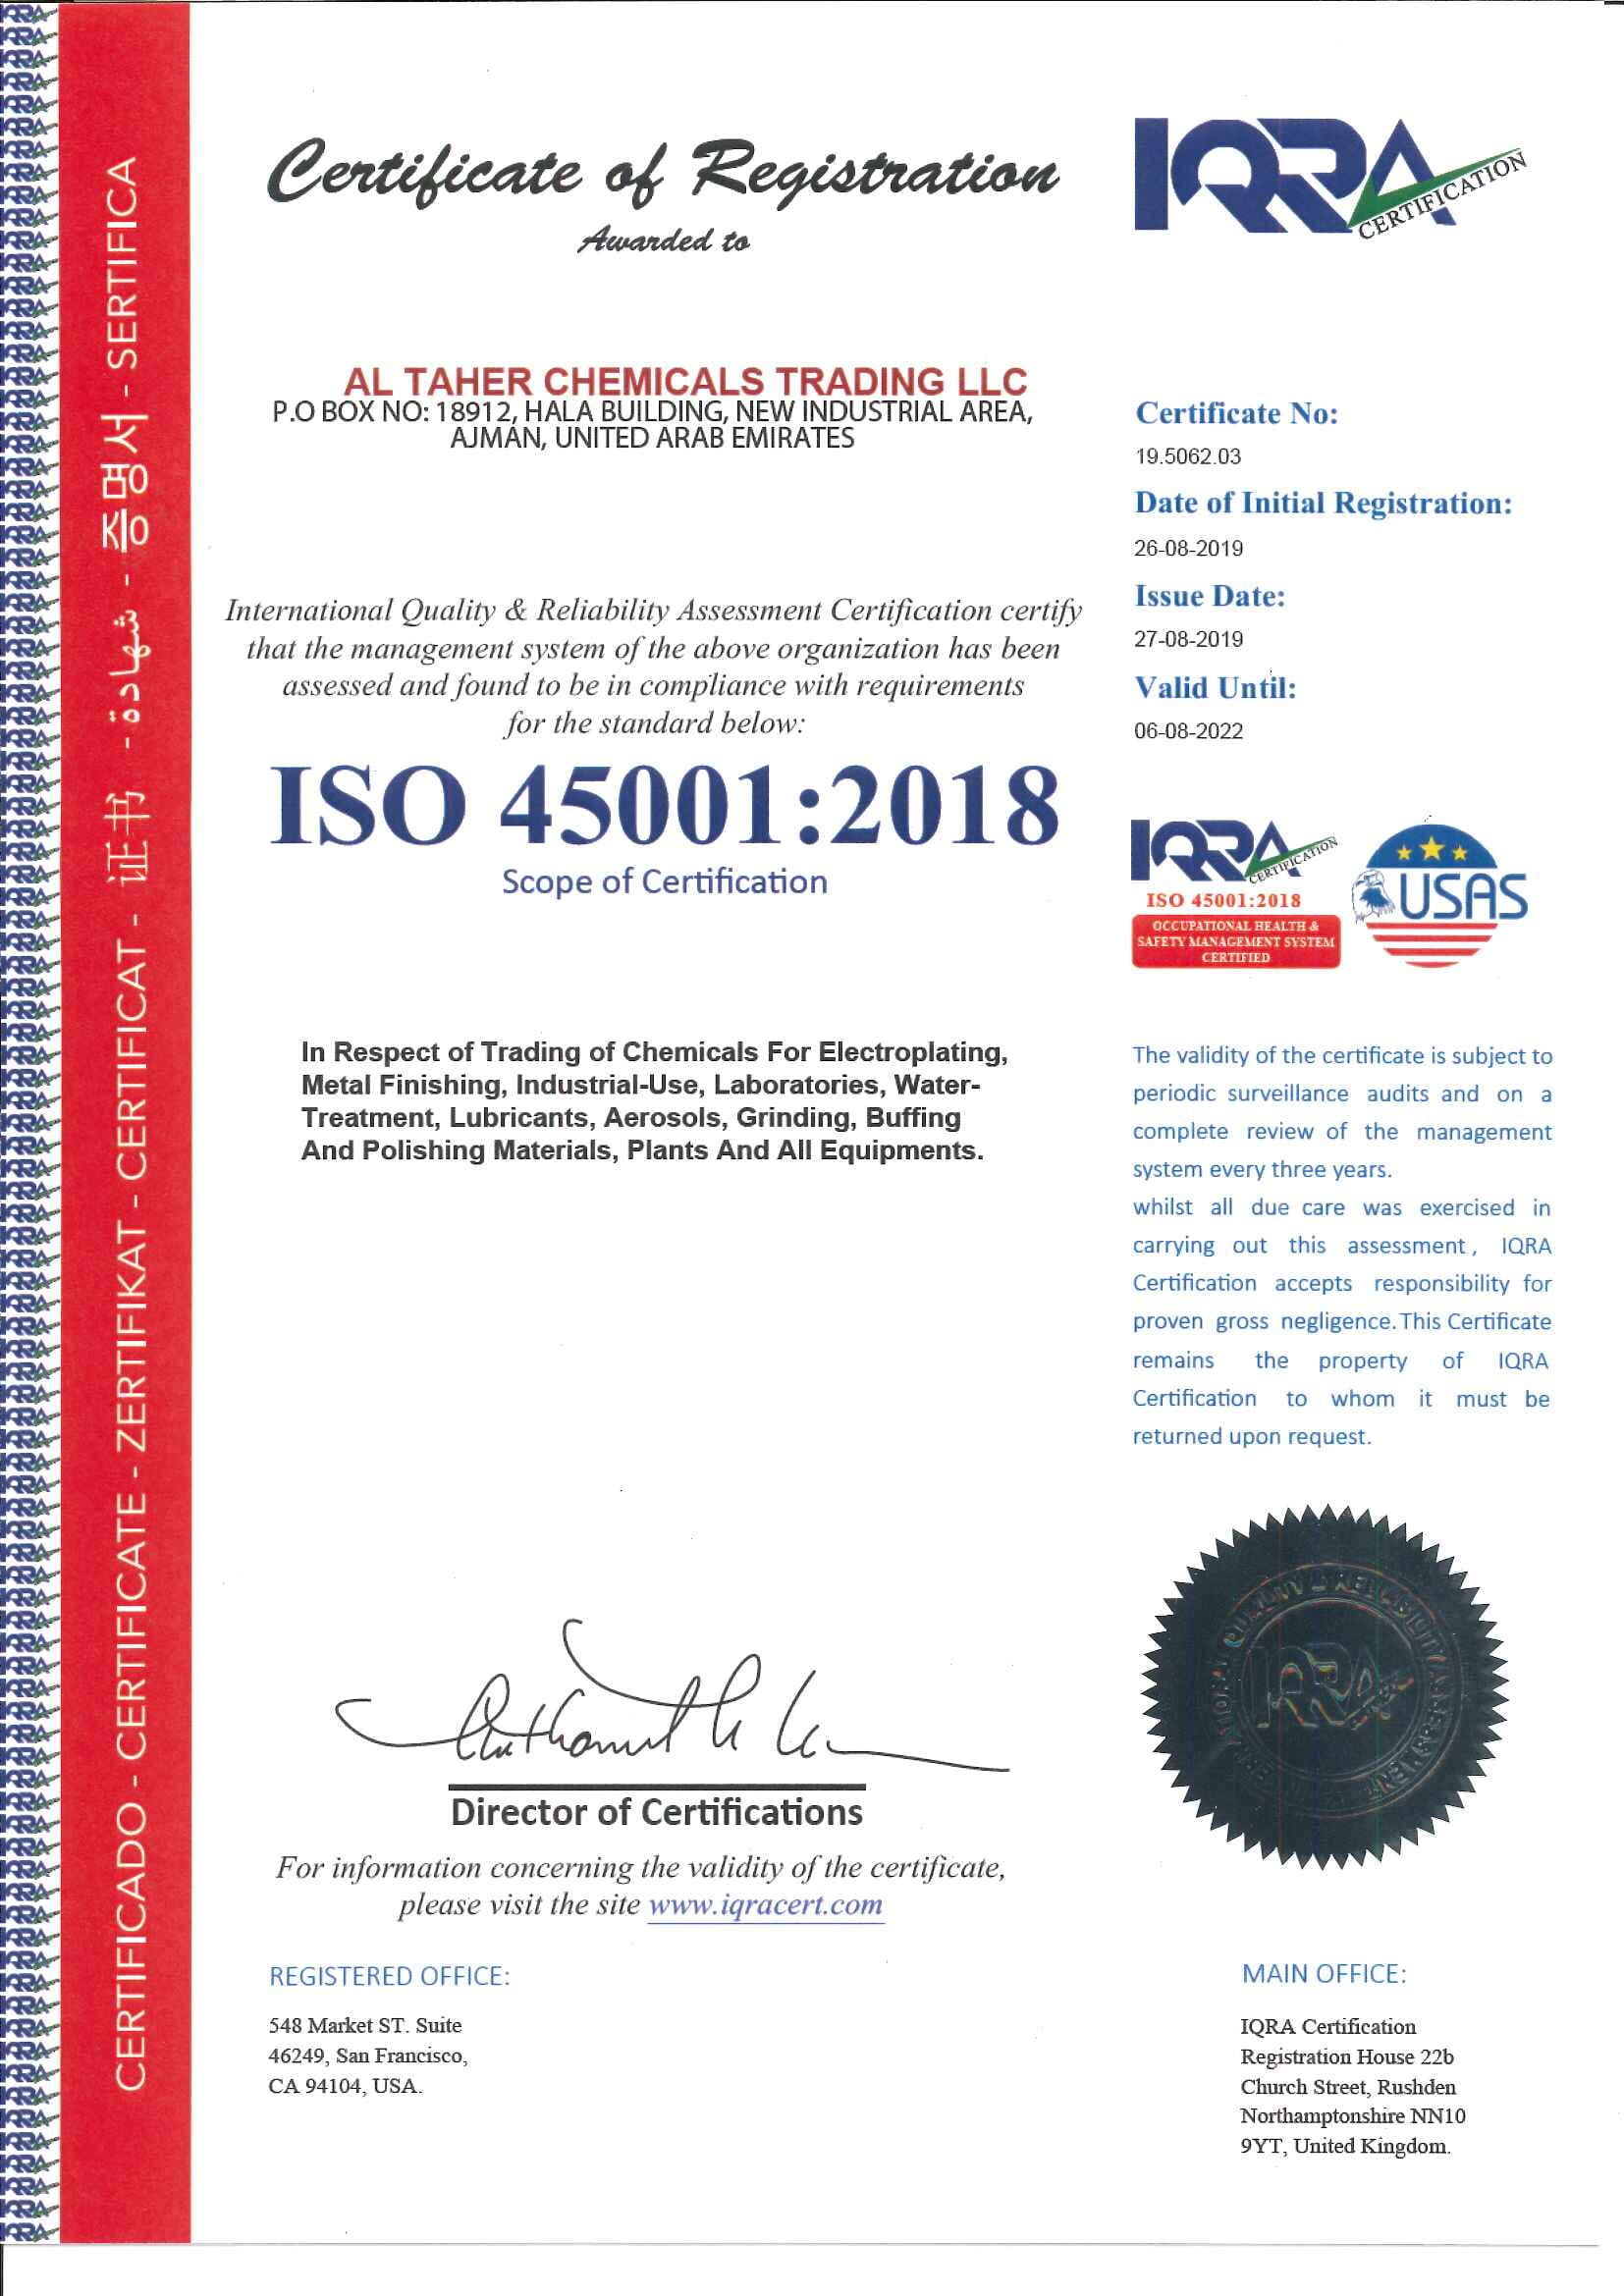 ISO 45001 - 2018 (Al Taher Chemicals)